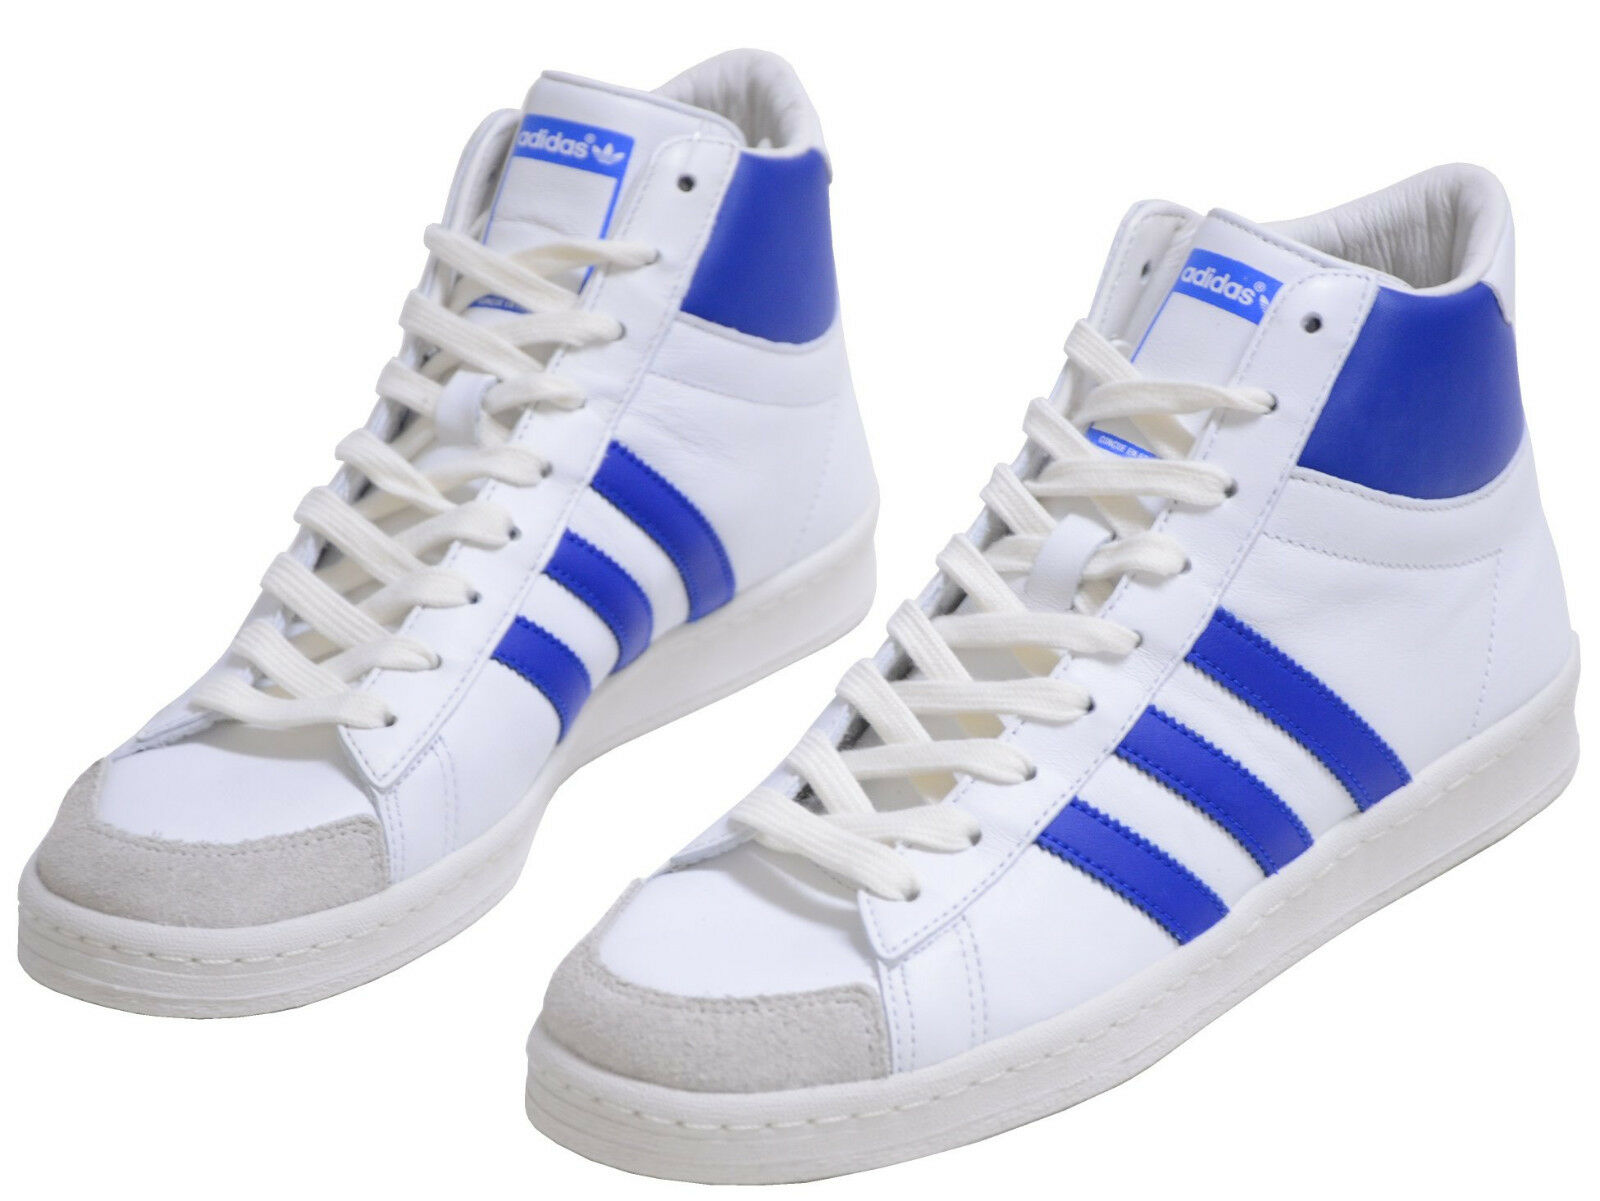 Adidas AO HOOK SHOT II Originals Schuhe Herrenschuhe Shohe Sneaker Men